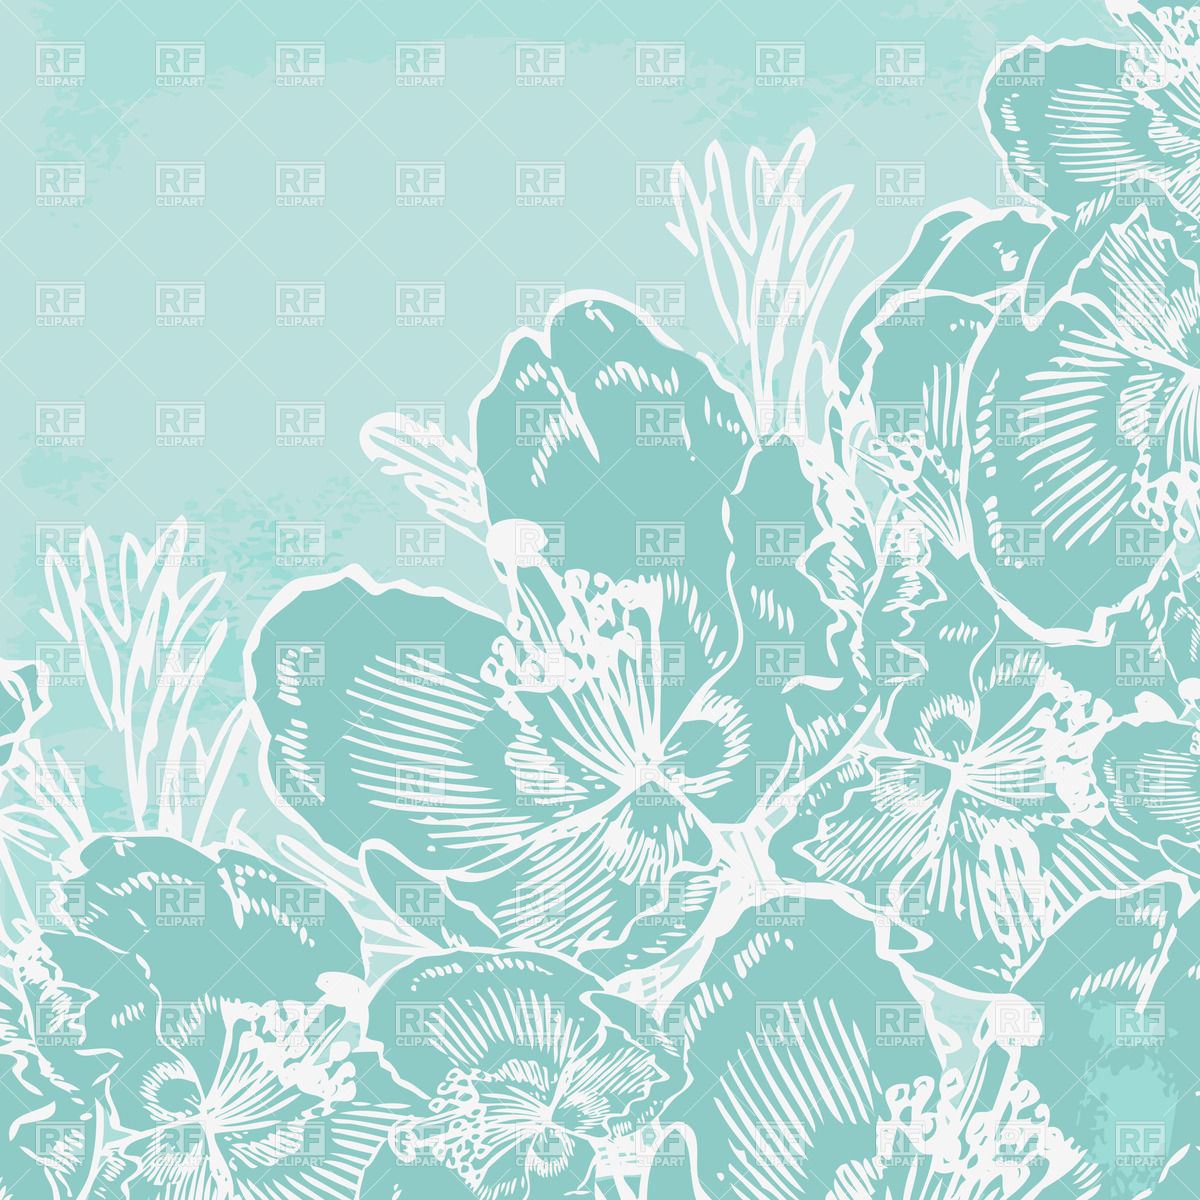 vintage blue greeting card with hand drawn flowers 21766 Backgrounds 1200x1200